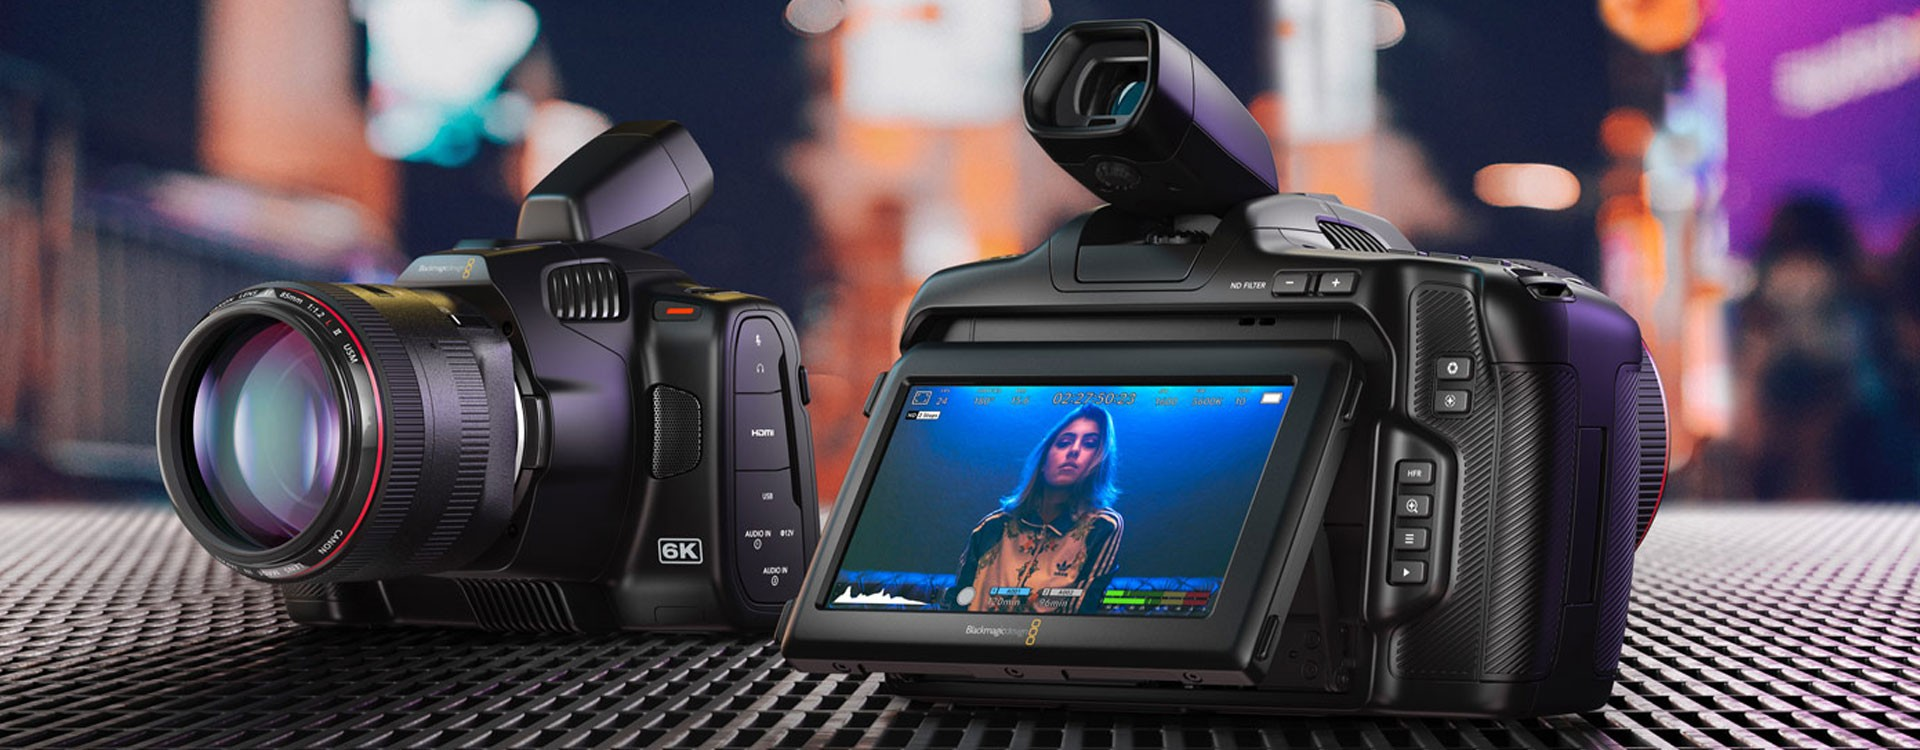 Blackmagic Design annonce la nouvelle Pocket Cinema Camera 6K Pro